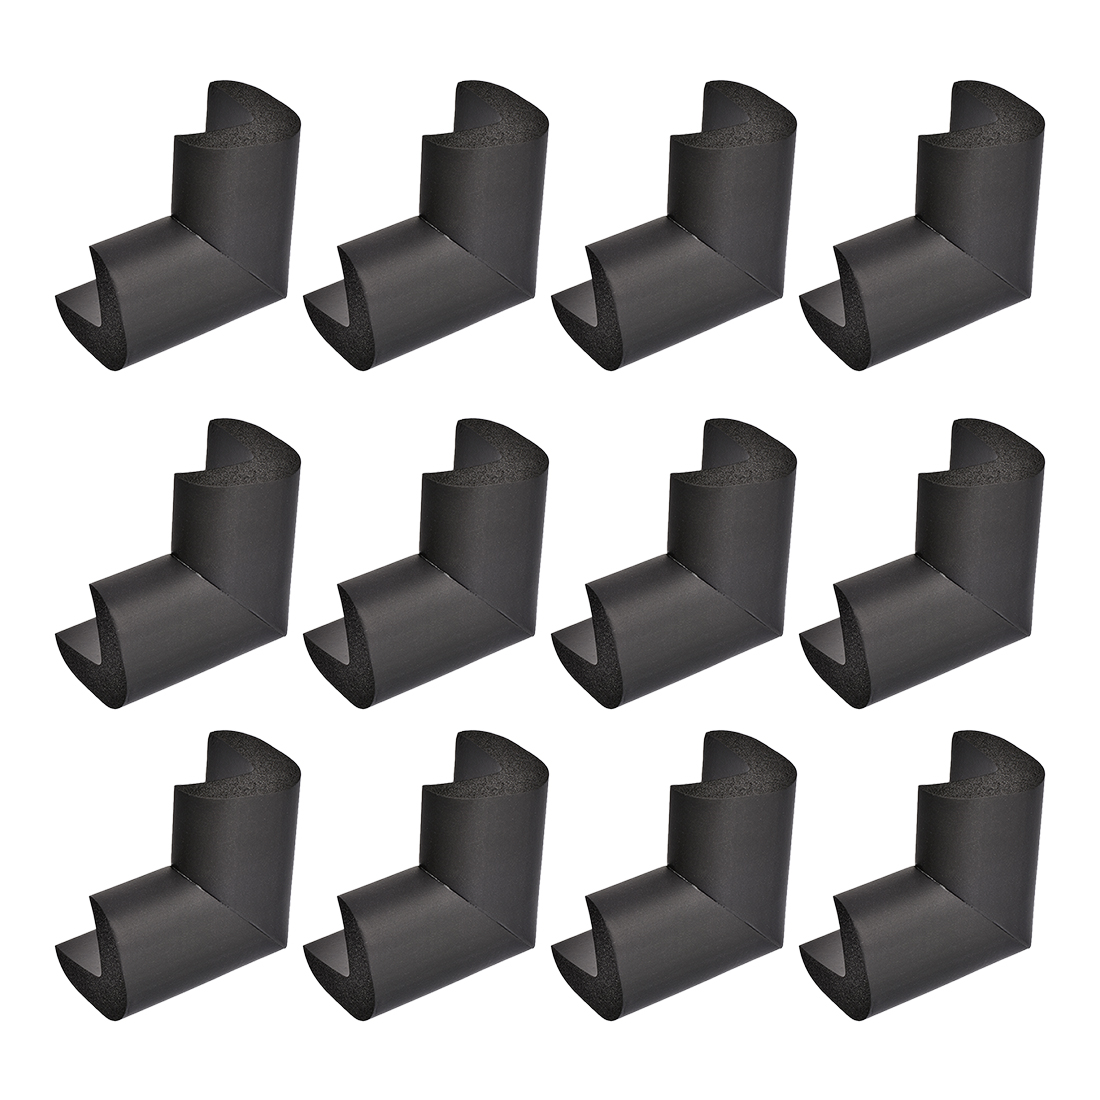 Corners Table Edge Guard Angle Corner Protective Pad 50 x 35 x 15mm Black 12pcs